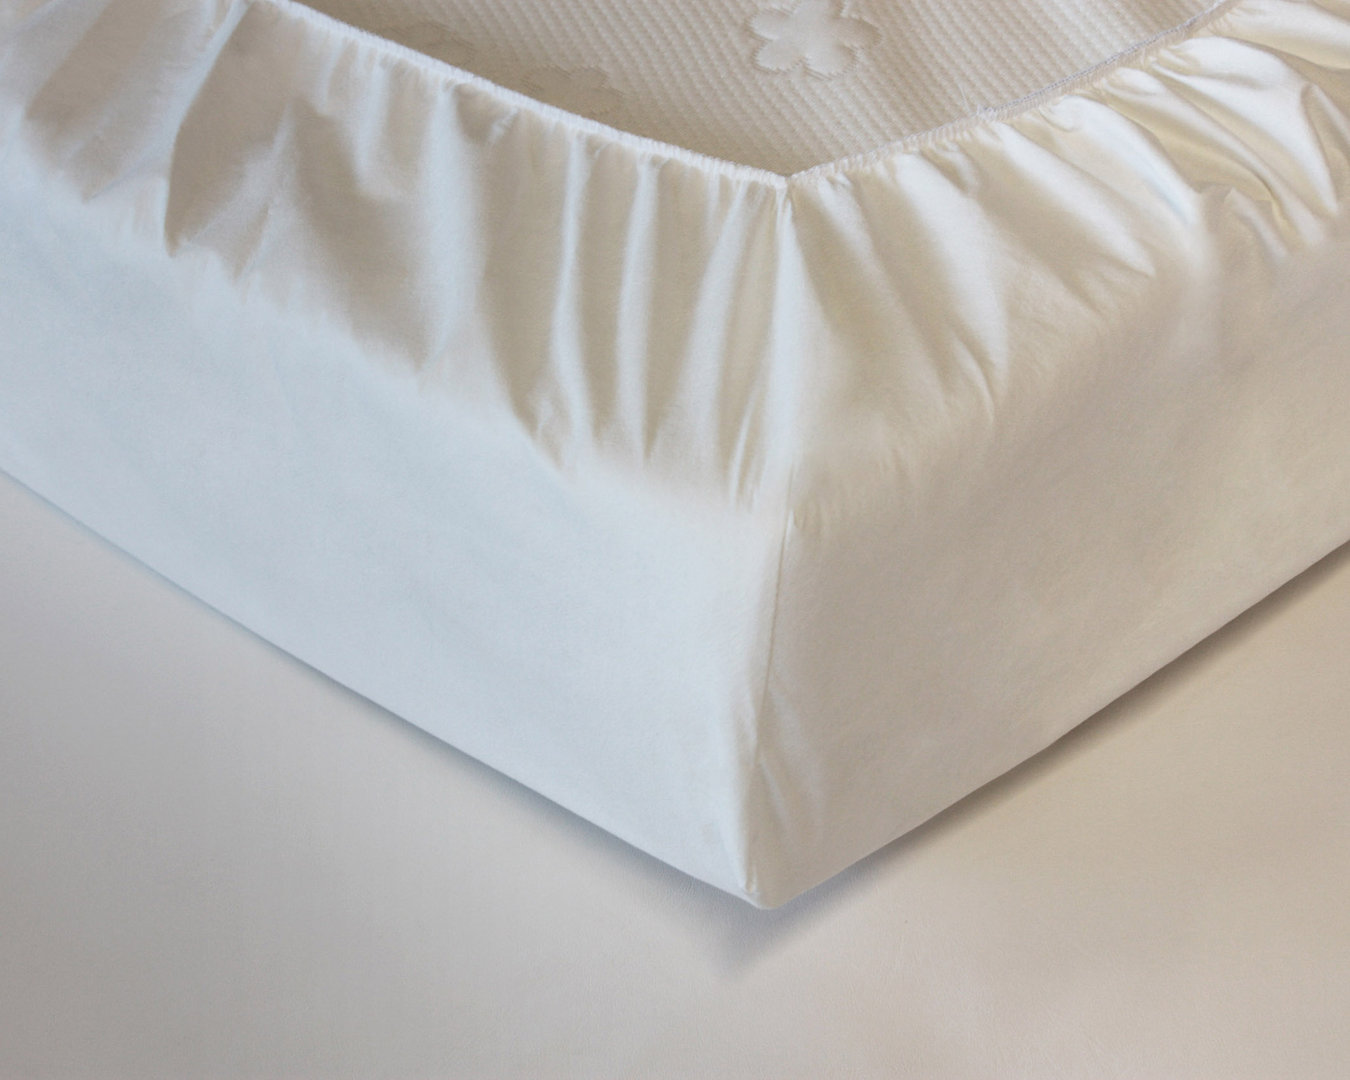 fitted sheet for traveling made of allergen allergy biona cheap. Black Bedroom Furniture Sets. Home Design Ideas